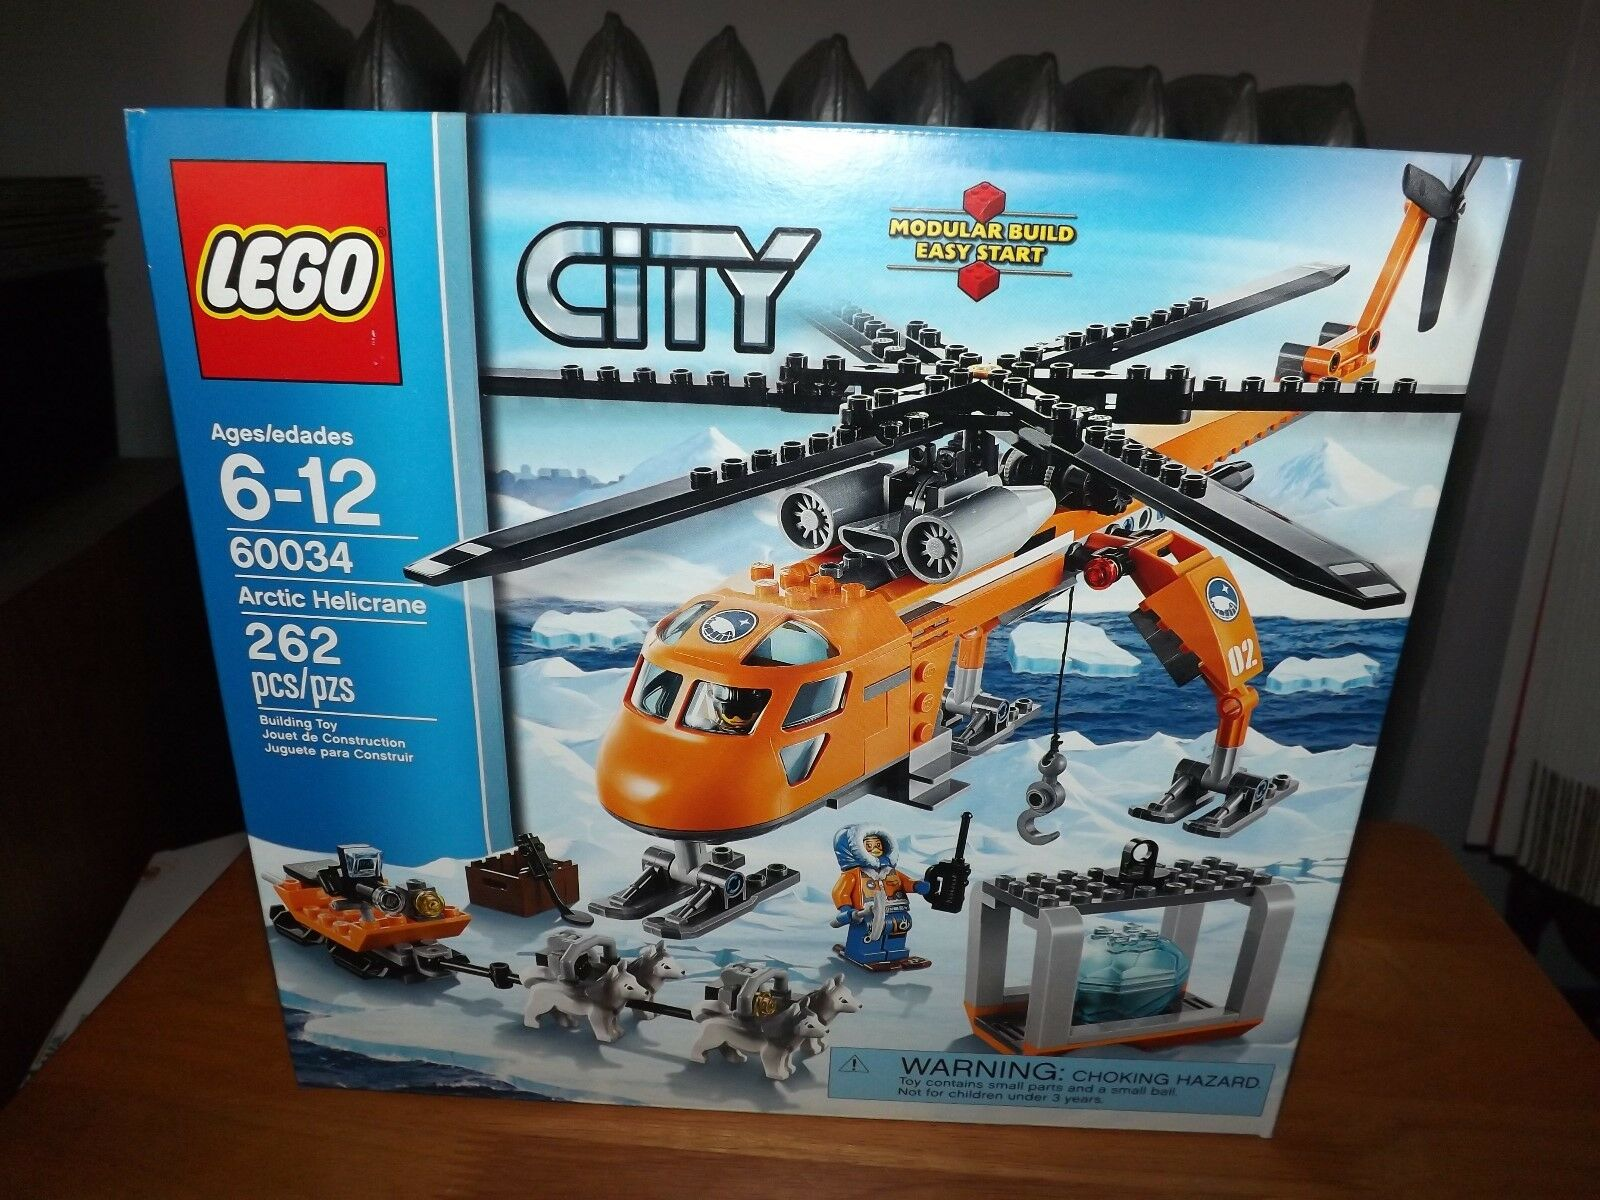 LEGO, CITY, ARCTIC HELICRANE, KIT  60034, 262 PCS, NIB, 2014